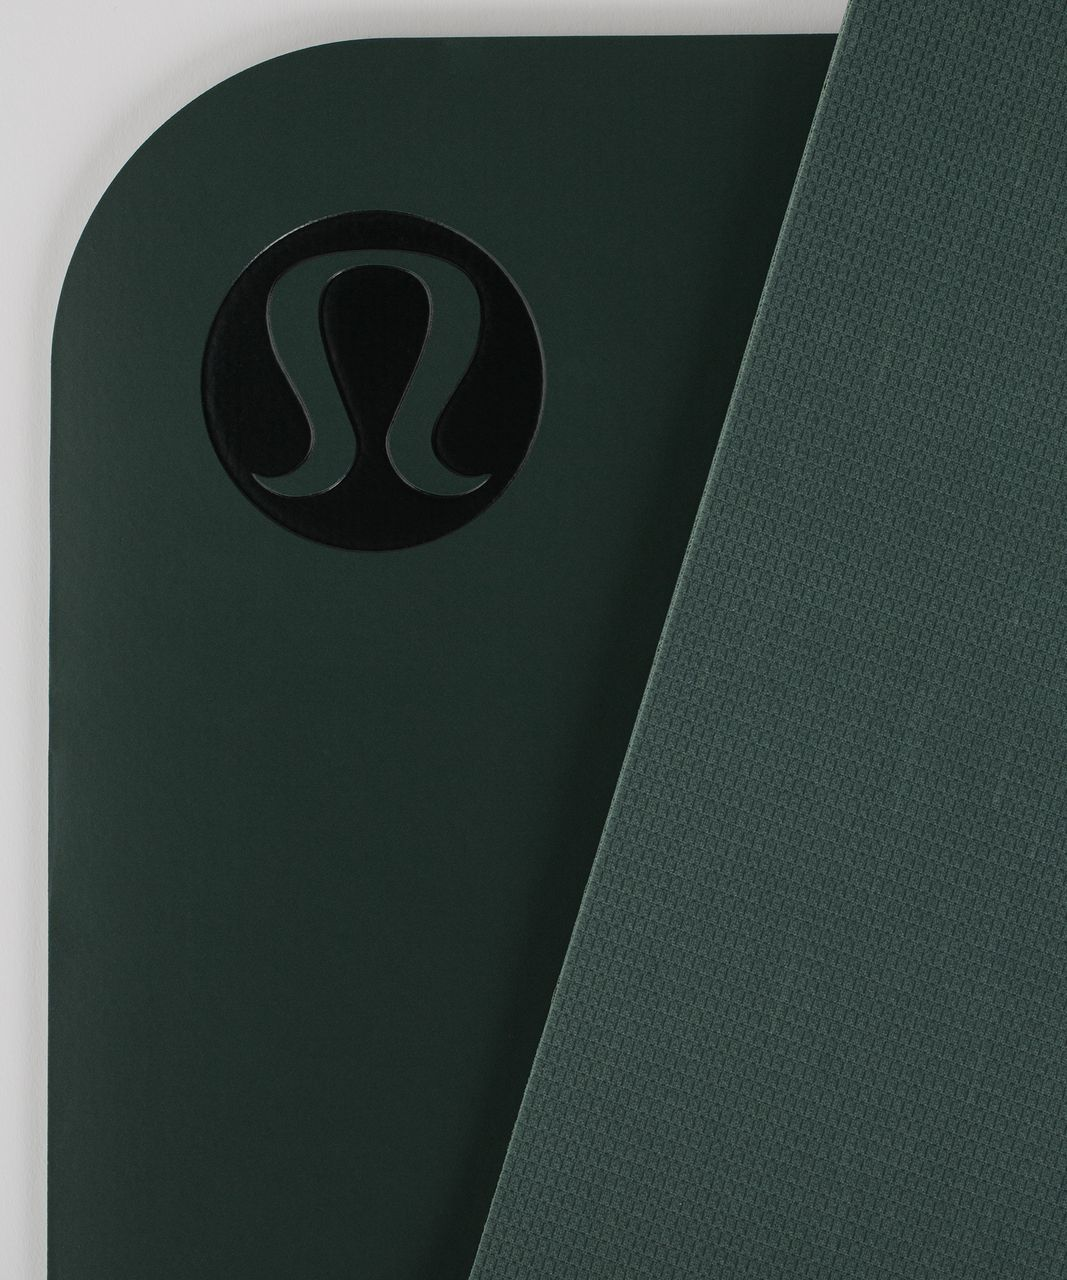 Lululemon The Reversible Mat 5mm - Dark Forest / Medium Forest